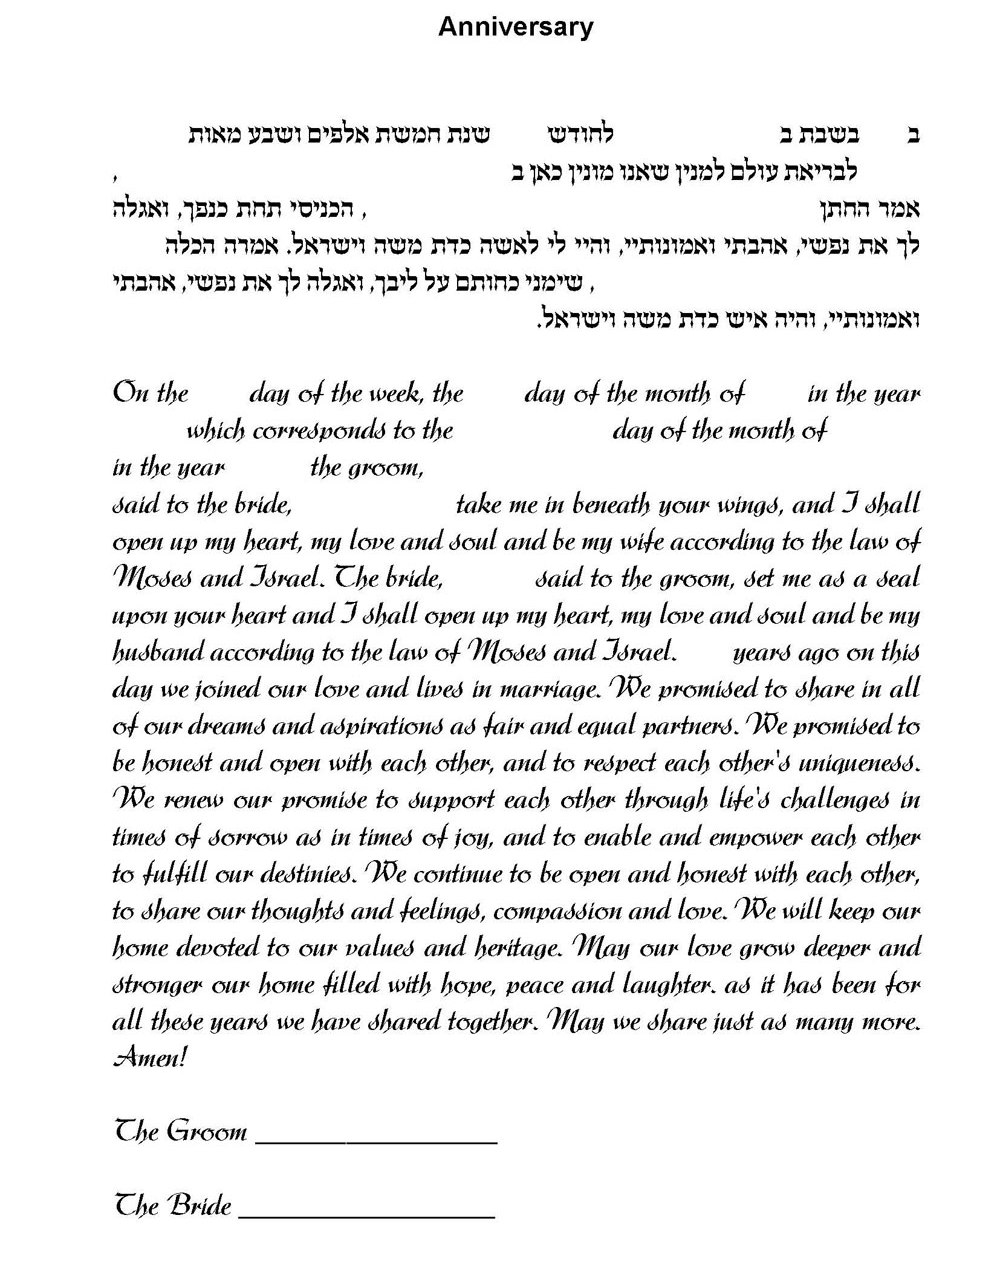 Seven Blessings 2 Ketubah By Ruth Rudin The Golden Dreidle